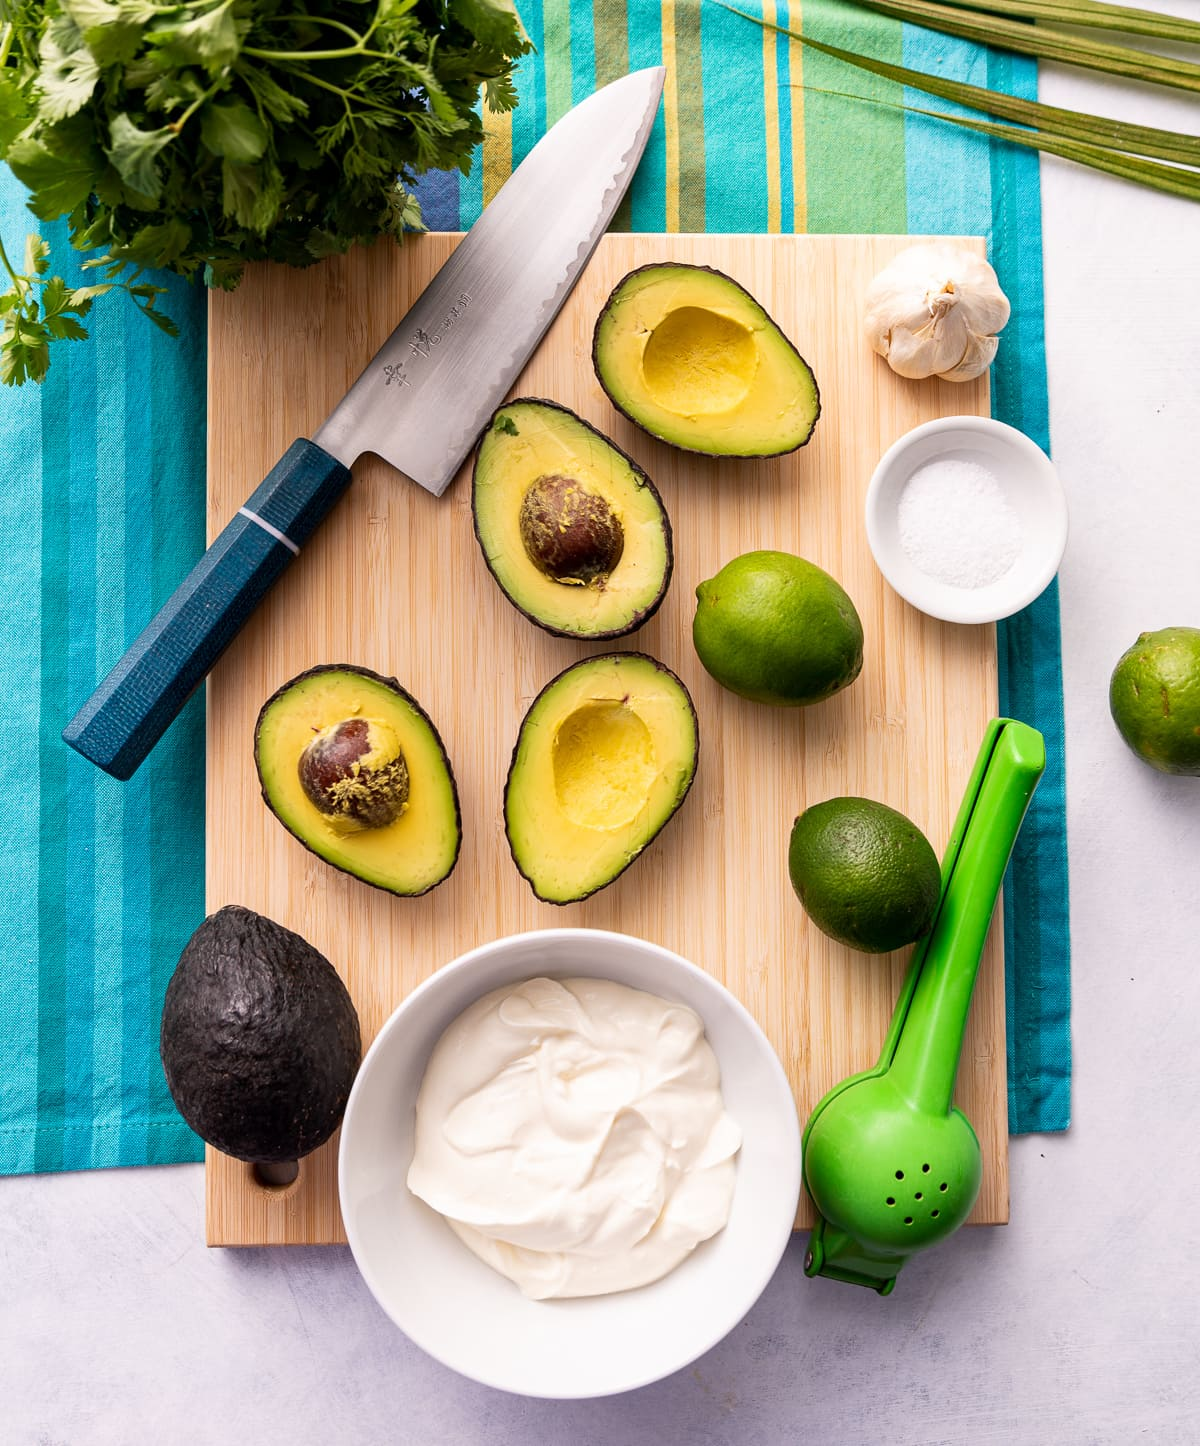 cutting board with avocados sliced in half whole limes knife with blue handle bowl of white sour cream green citrus press